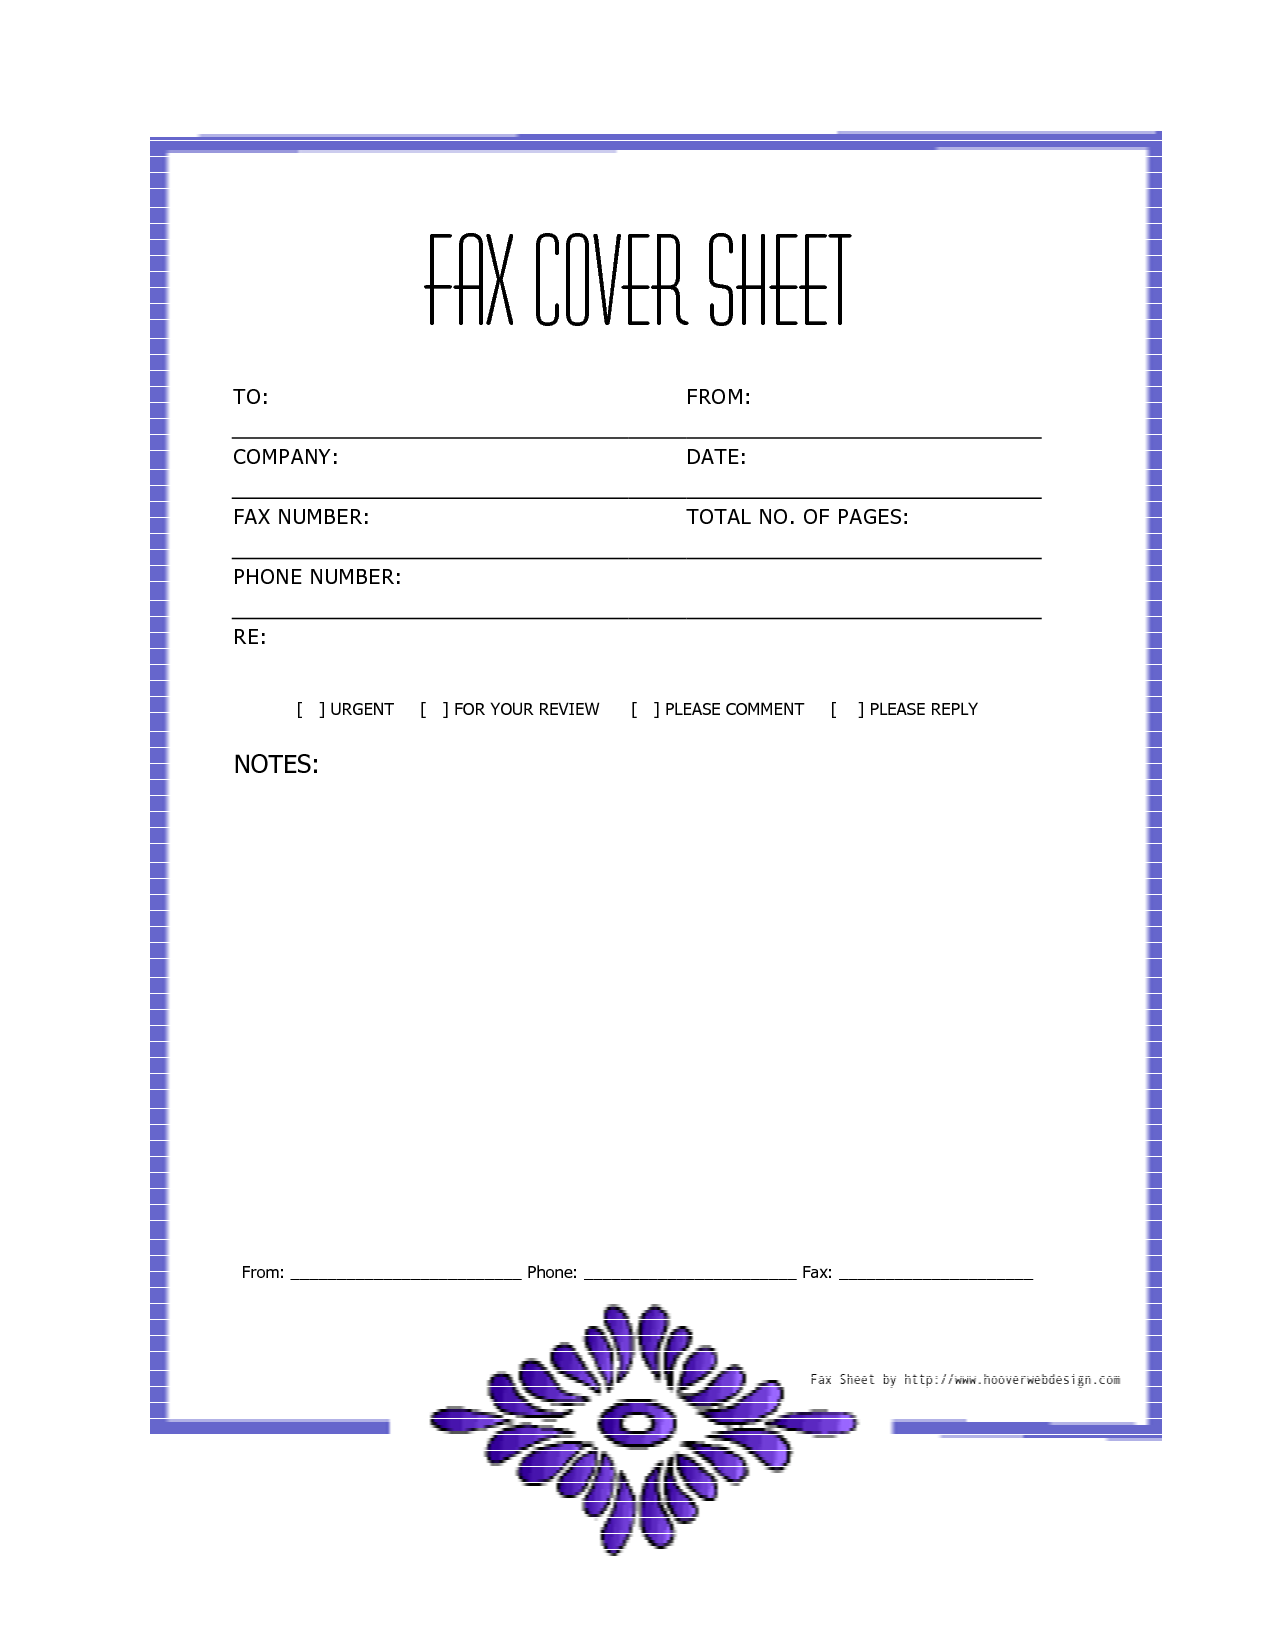 fax cover sheet example httpcalendarprintablehubcomfax cover. Resume Example. Resume CV Cover Letter